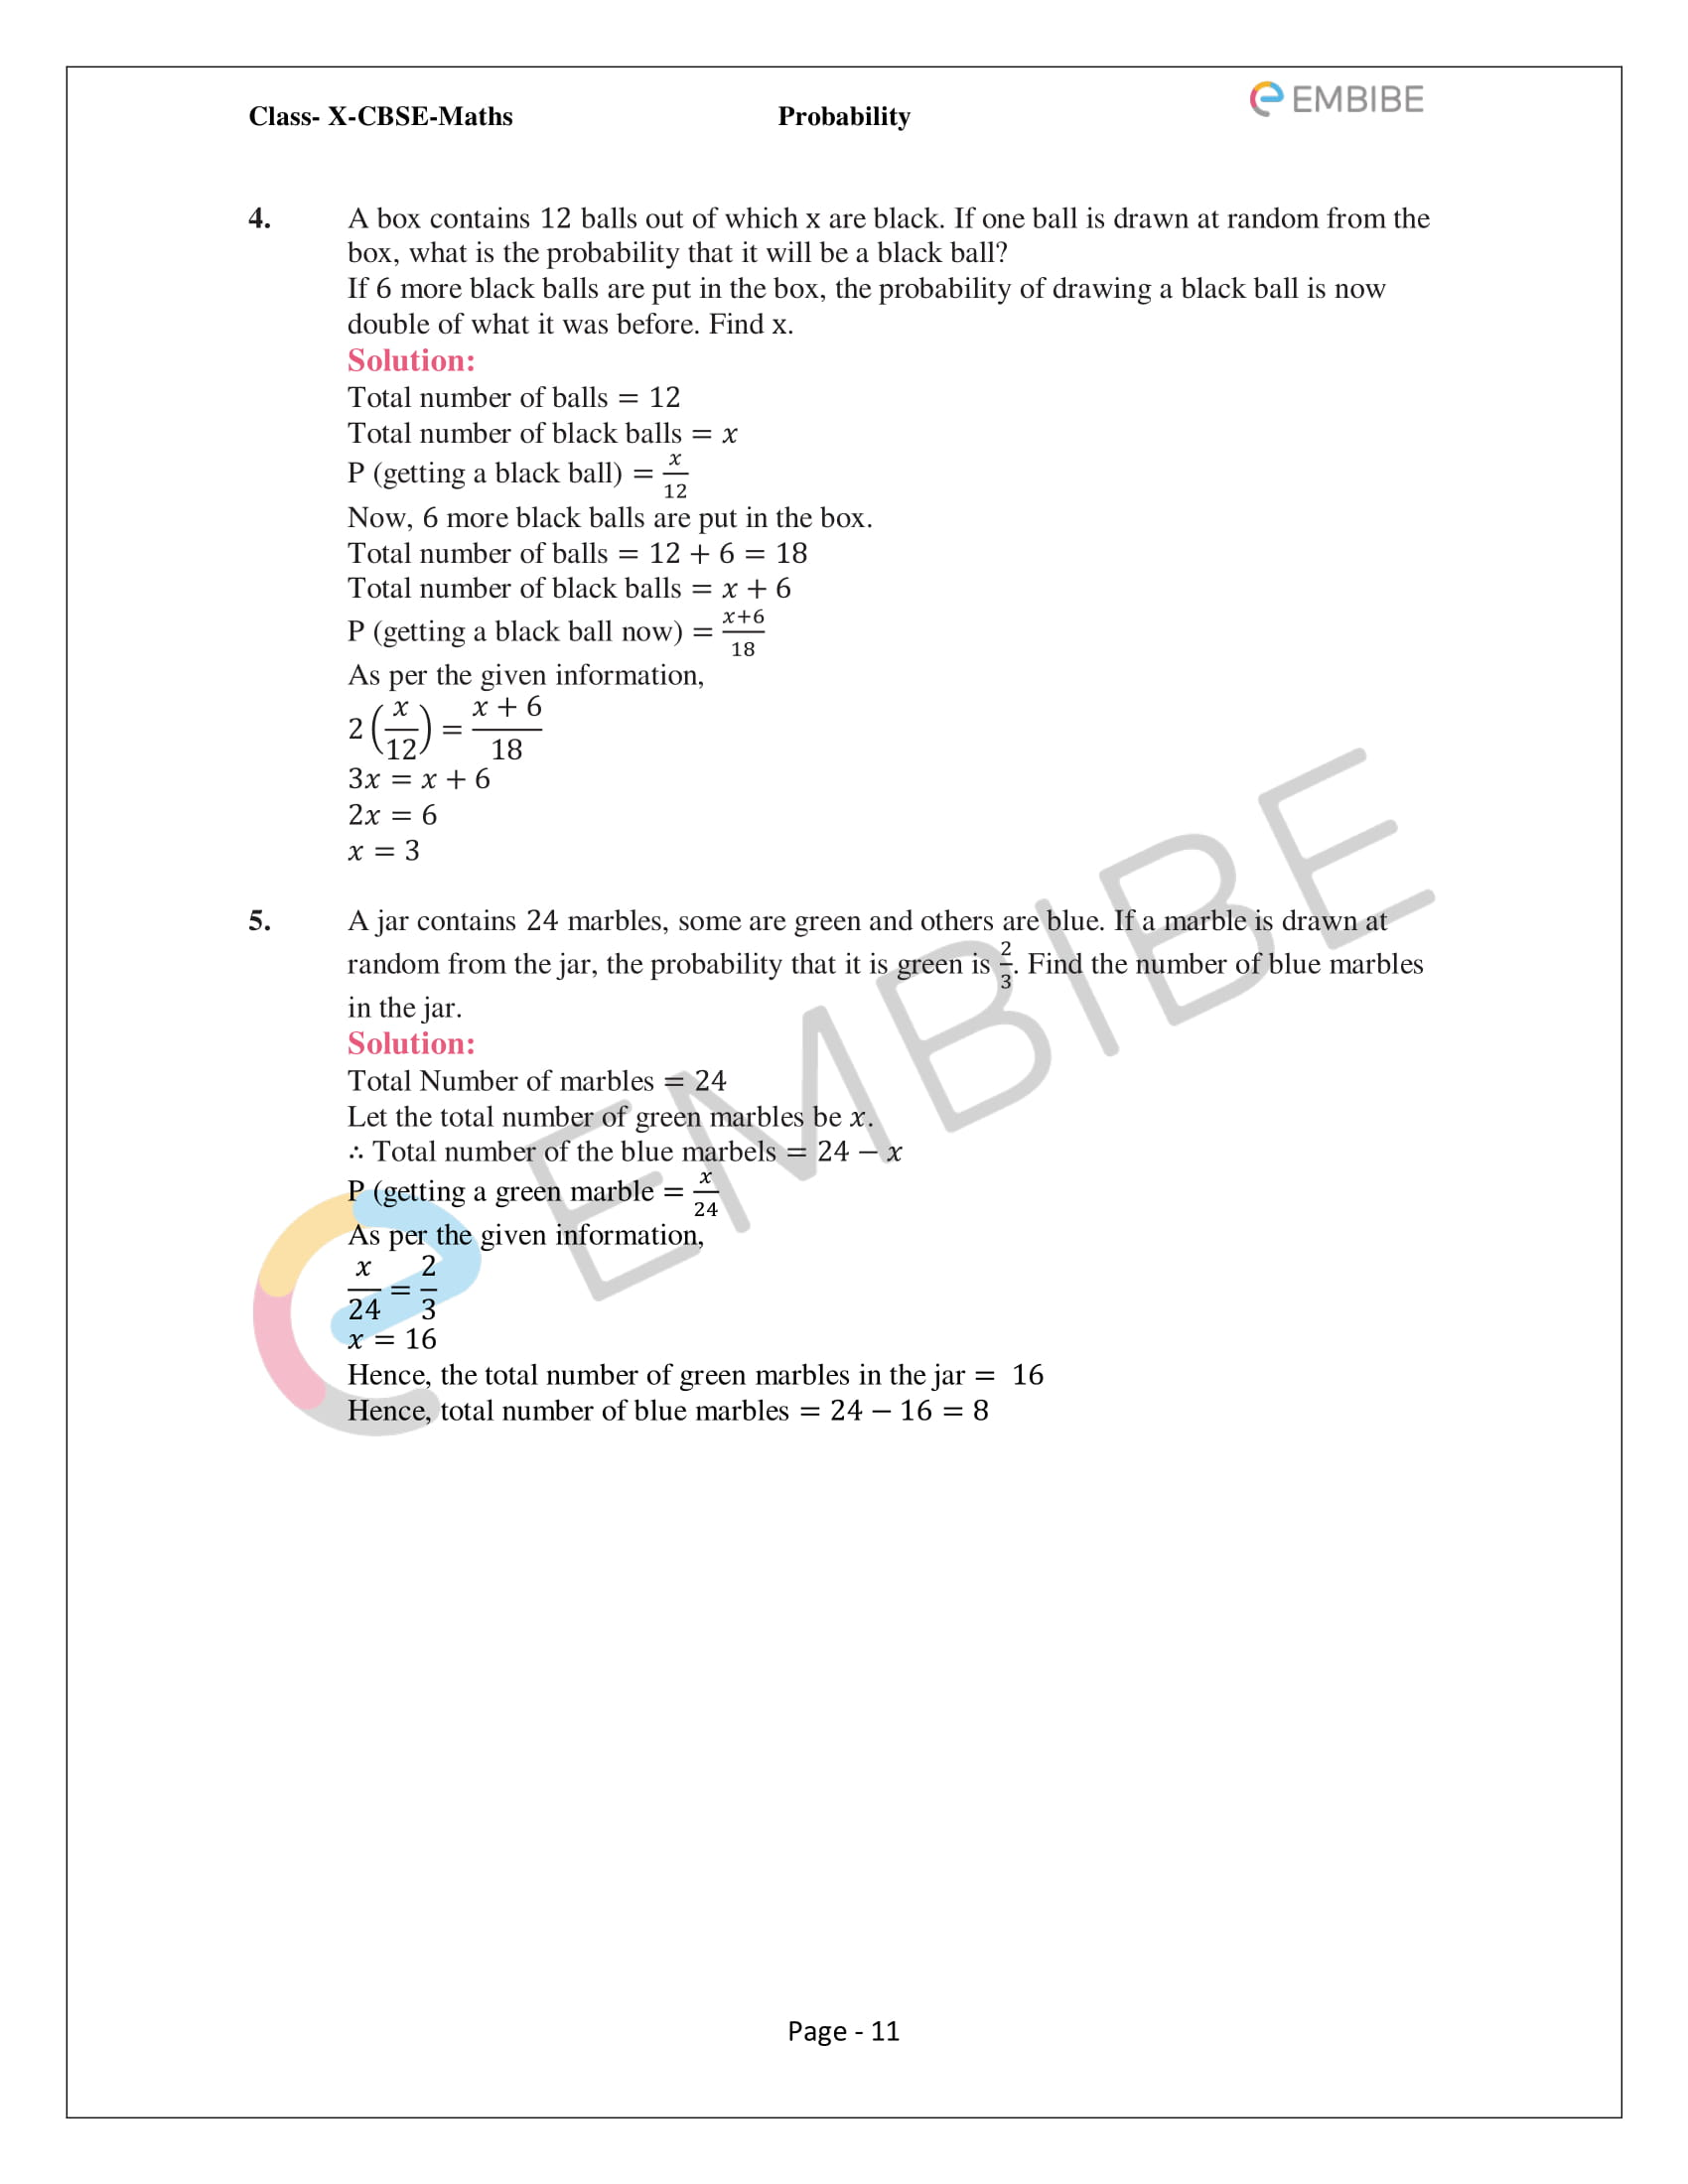 CBSE NCERT Solutions For Class 10 Maths Chapter 15 - Probability - 11